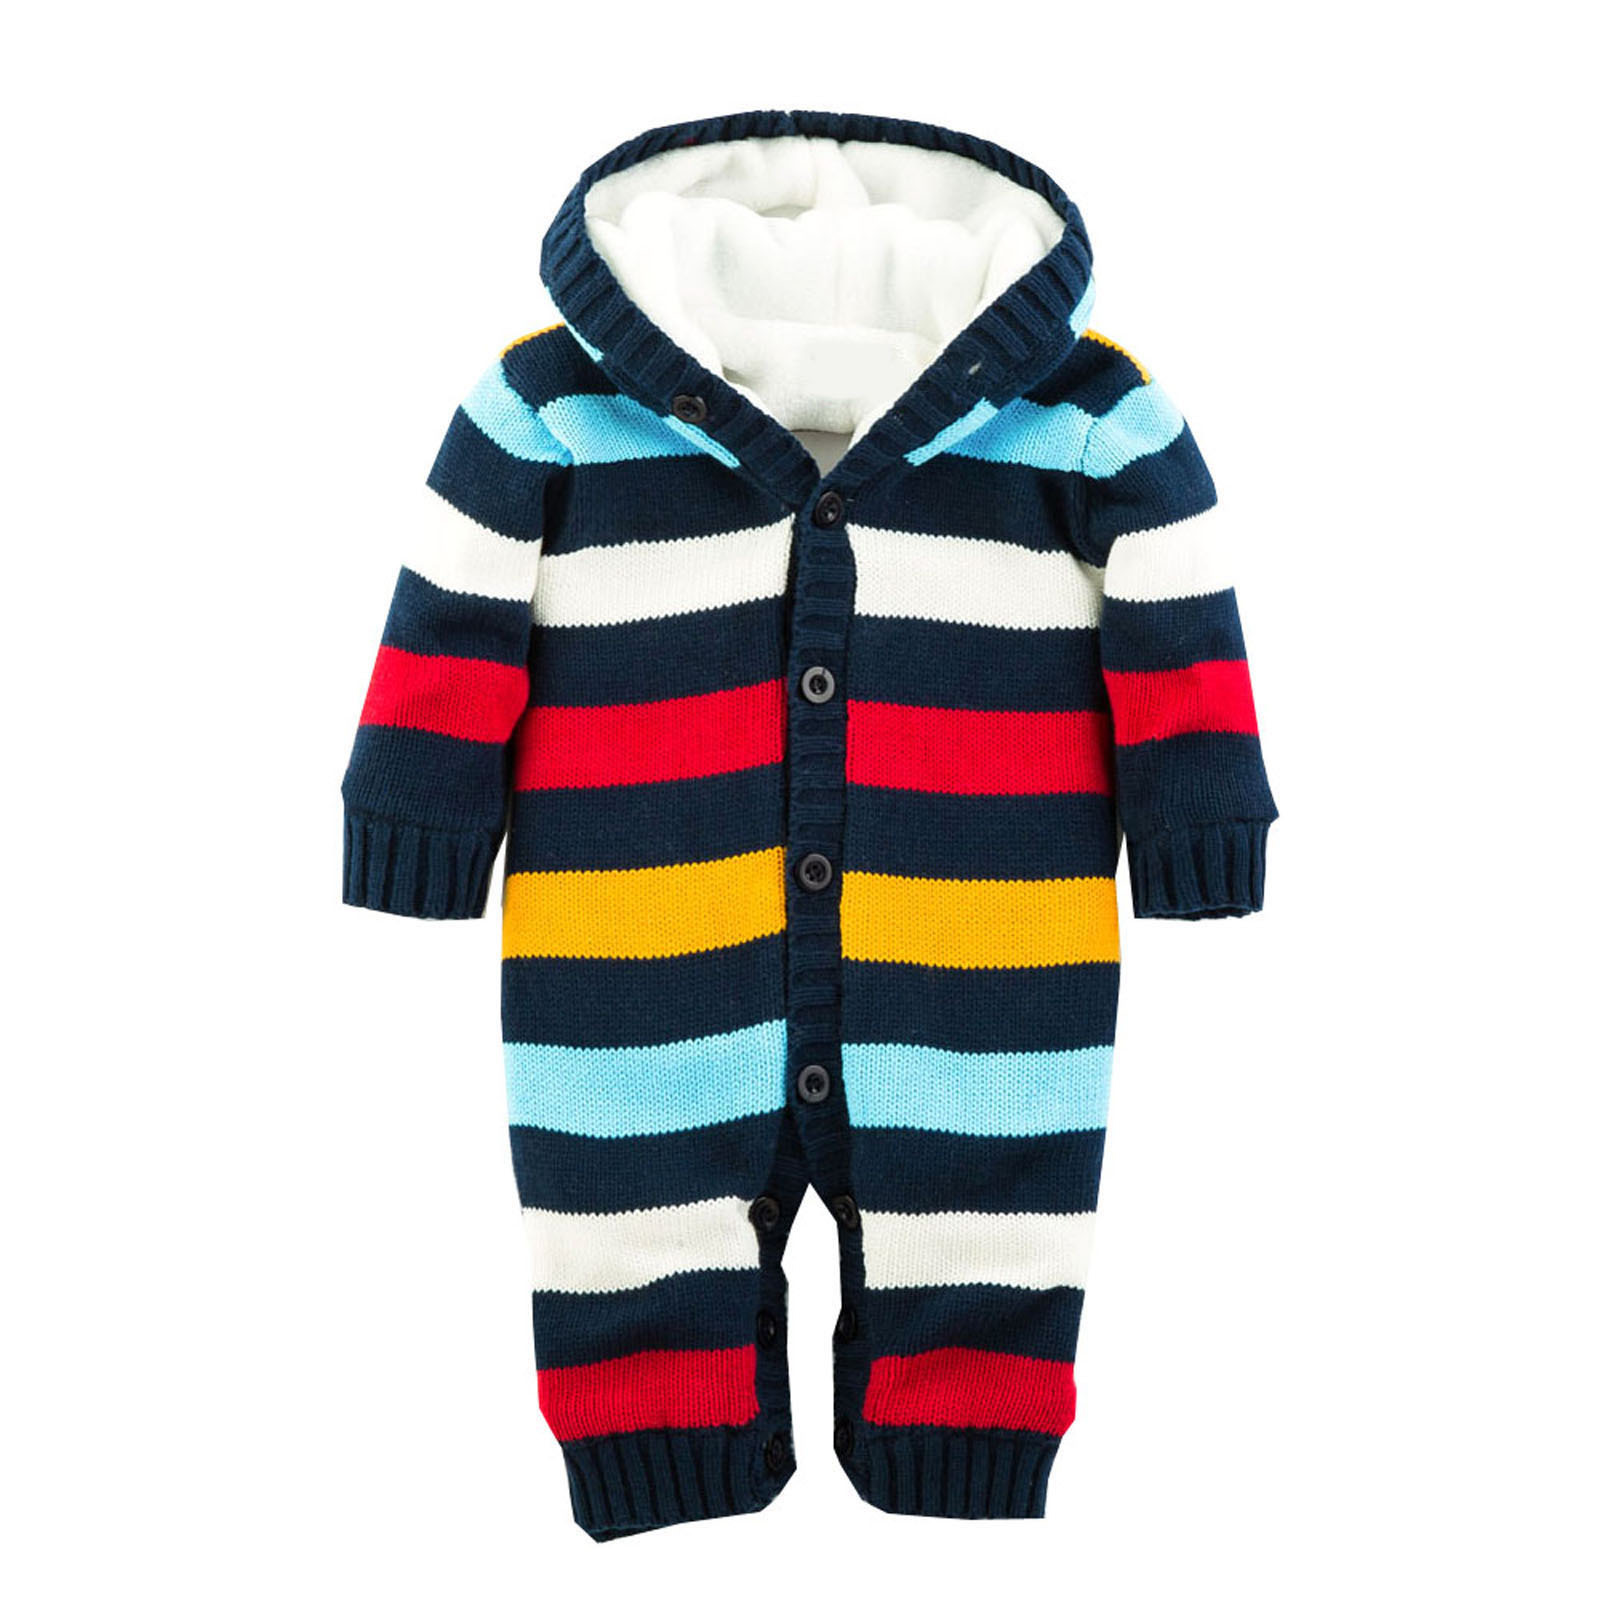 a83bbc86cc2 Winter Newborn Baby Romper Boys Girls Rompers Jumpsuit Warm Thick Knitted  Sweater Hooded Outwear Climbing Clothes